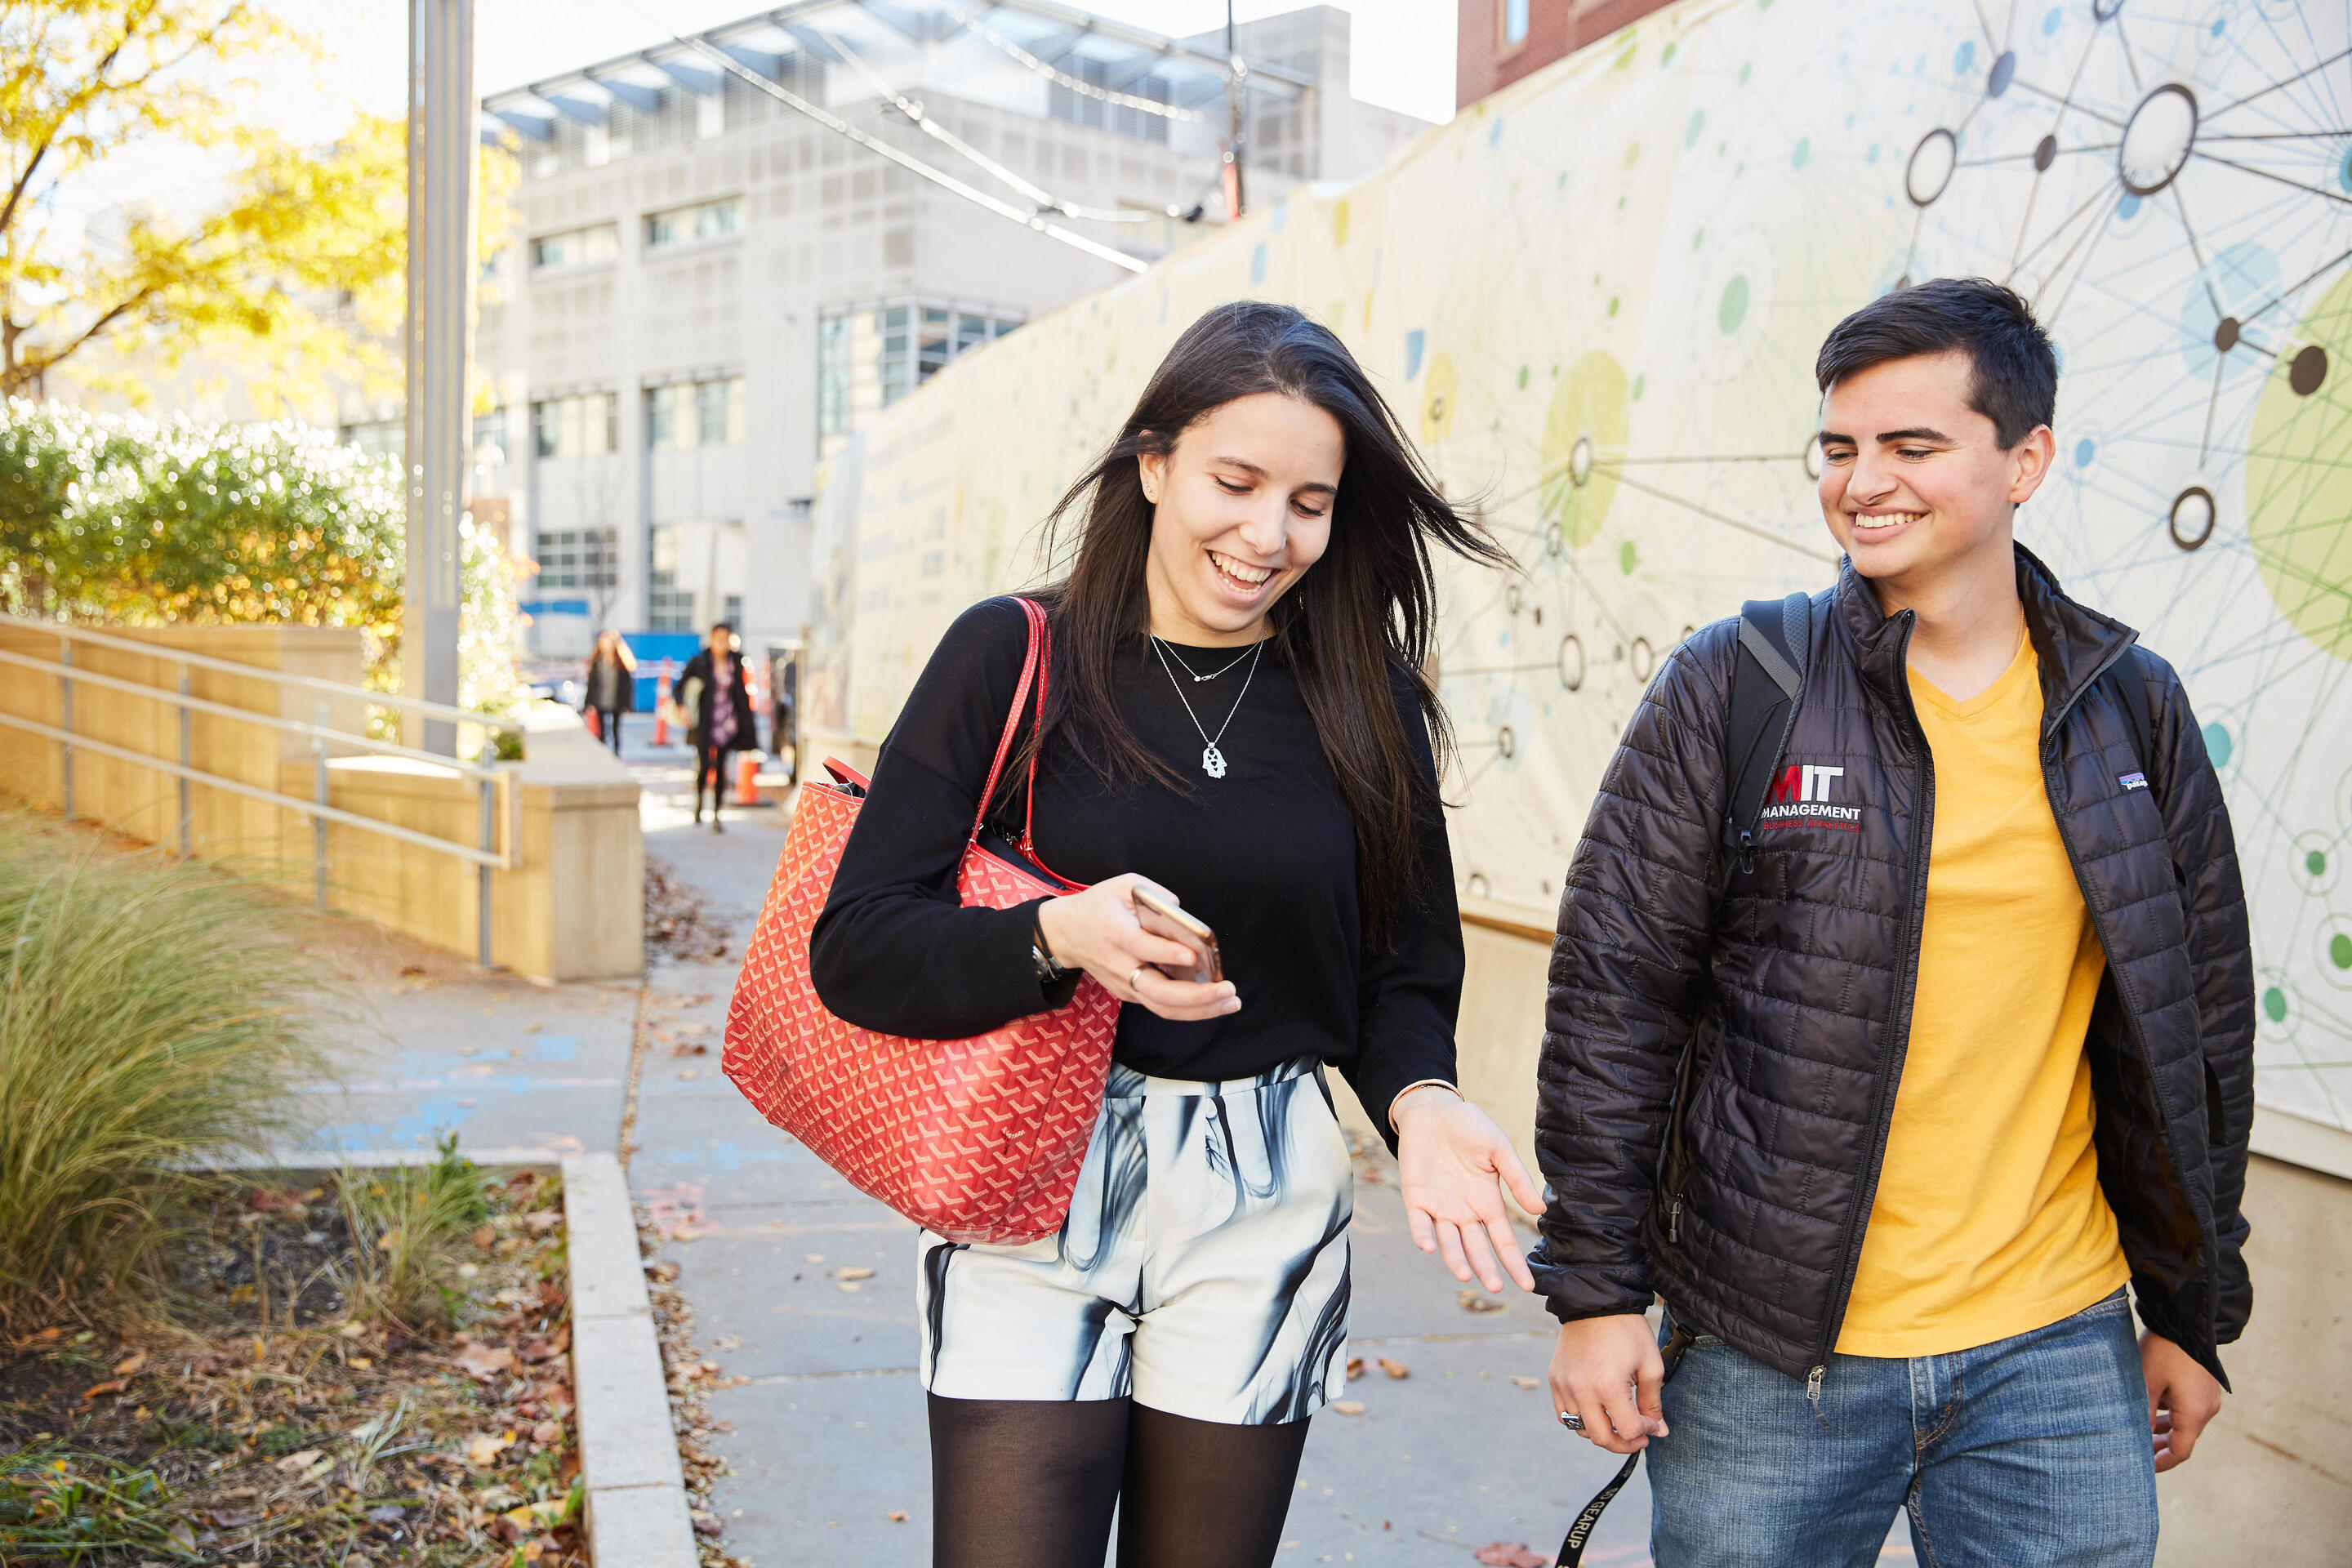 MIT Sloan students walking on campus